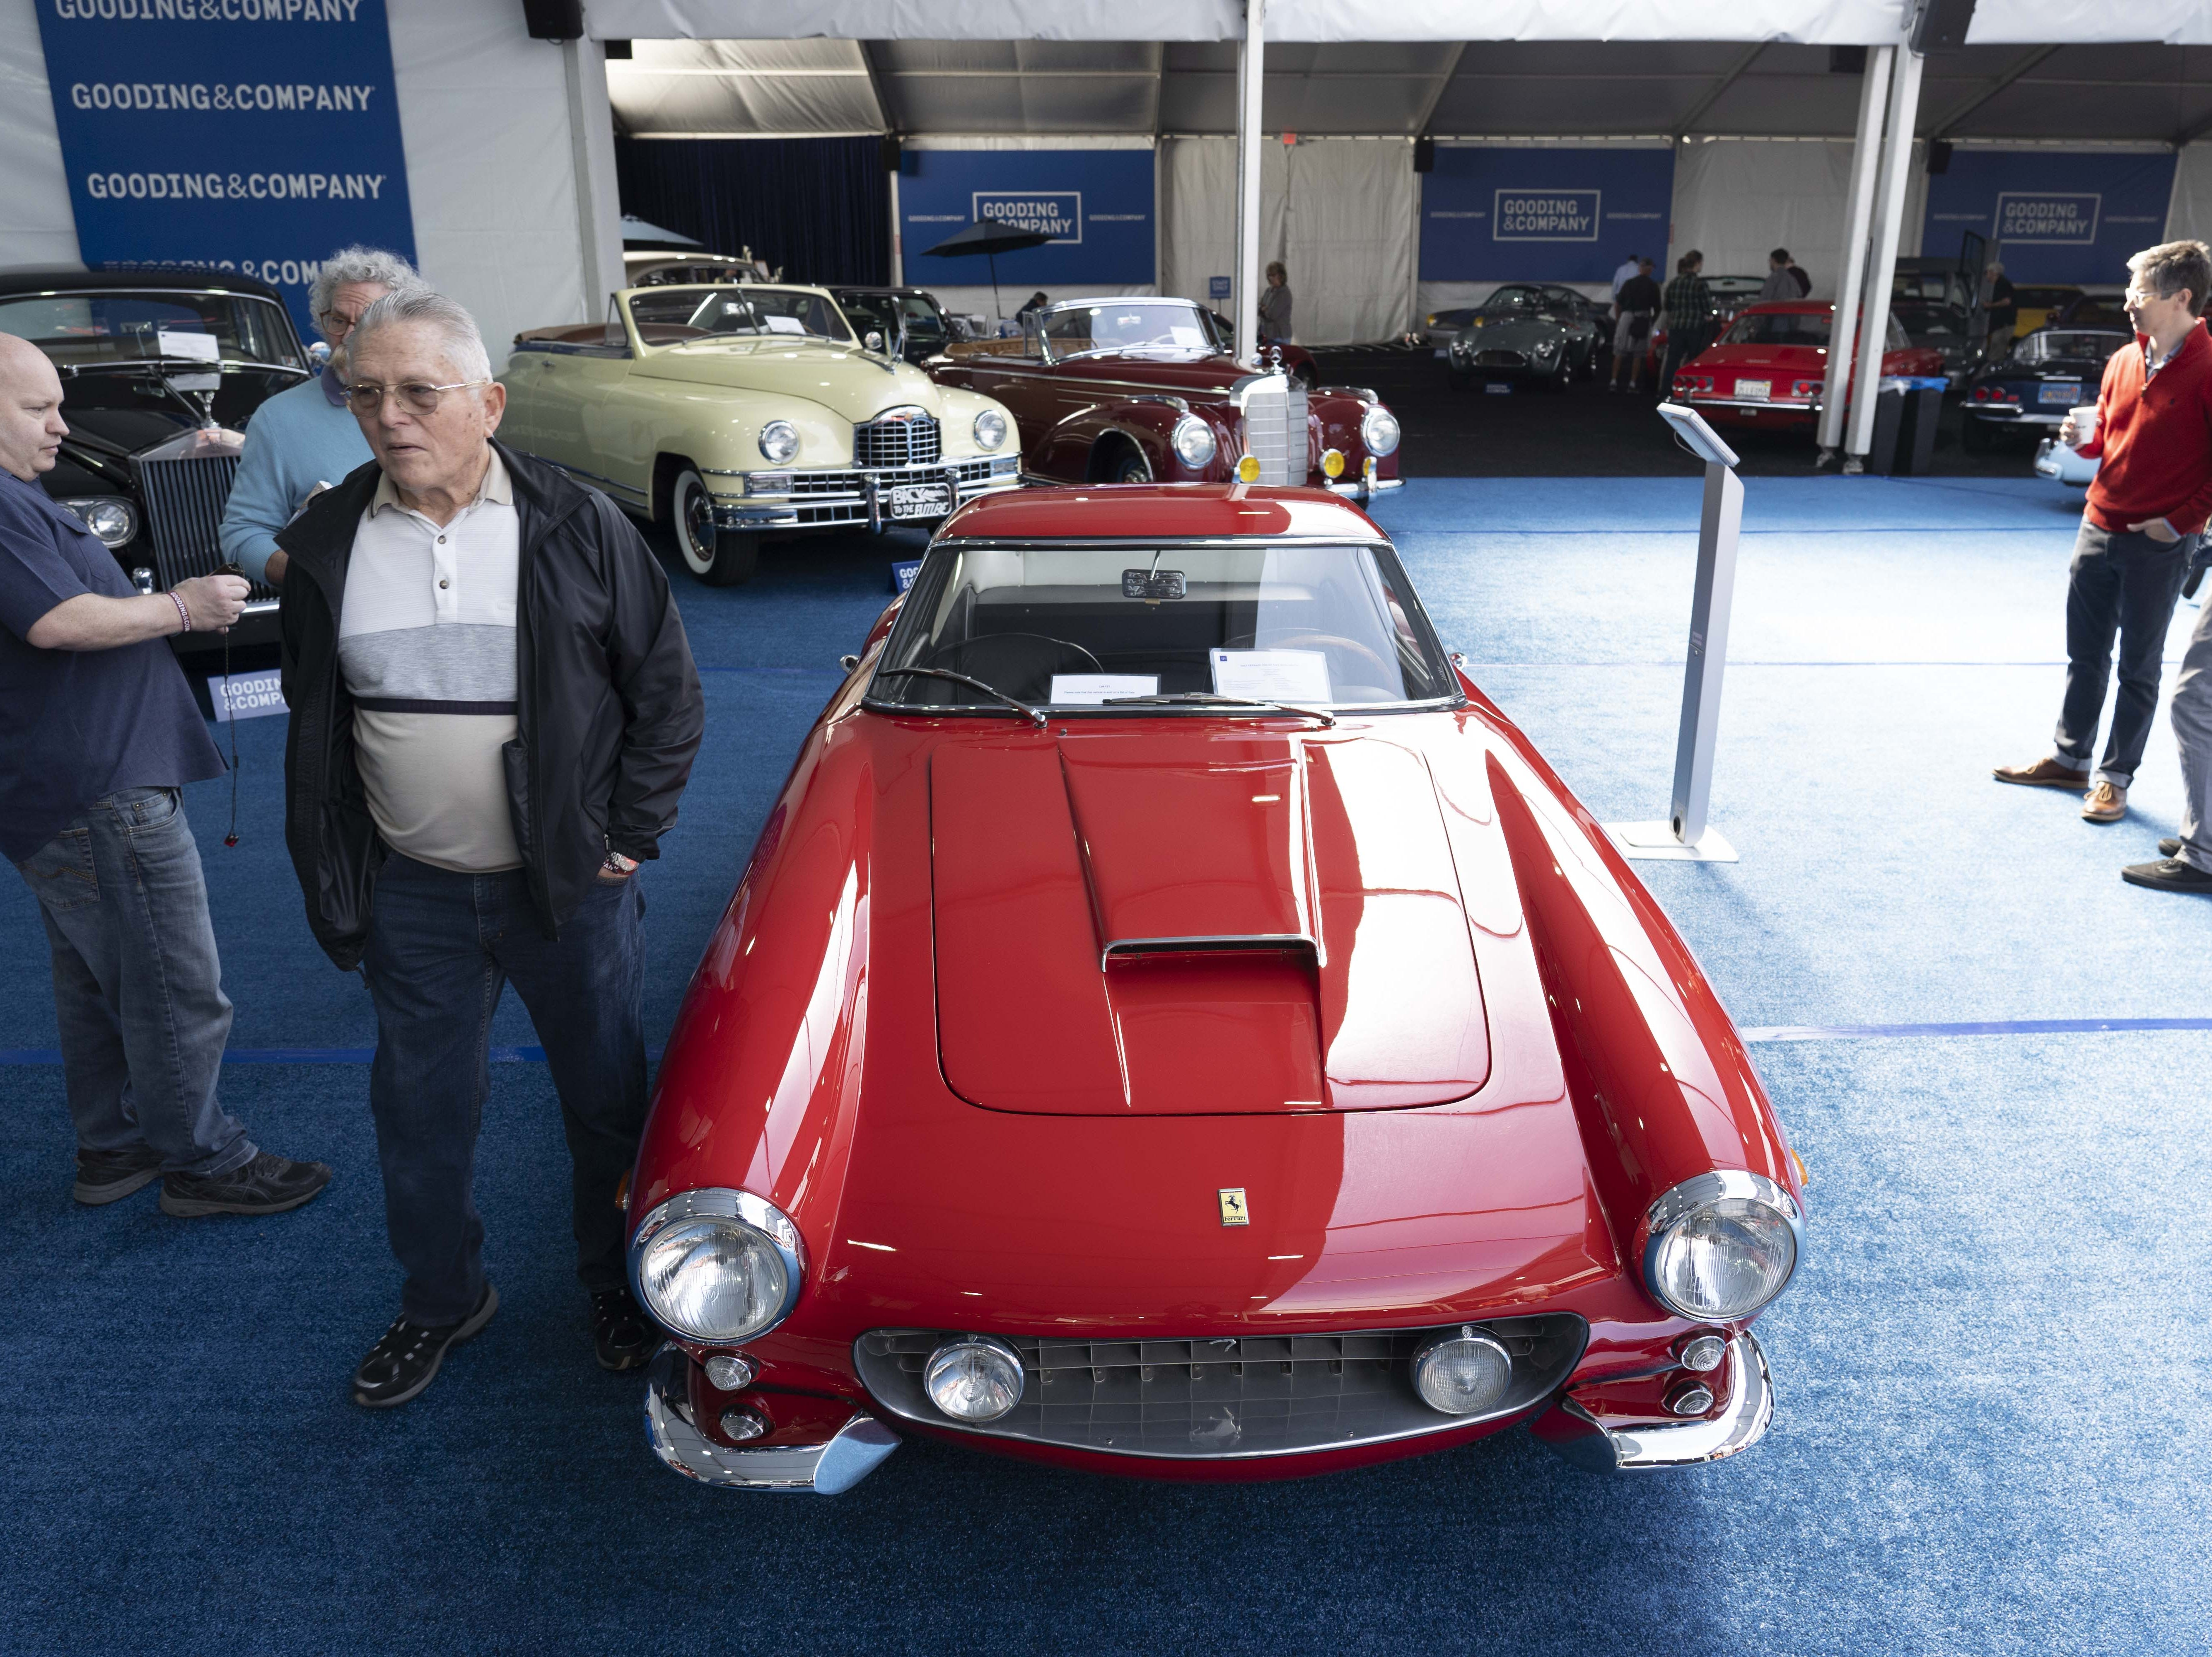 Car fans look at the 1963 Ferrari 250 GT SWB Berlinetta for auction at Gooding & Co.'s preview day in Scottsdale.